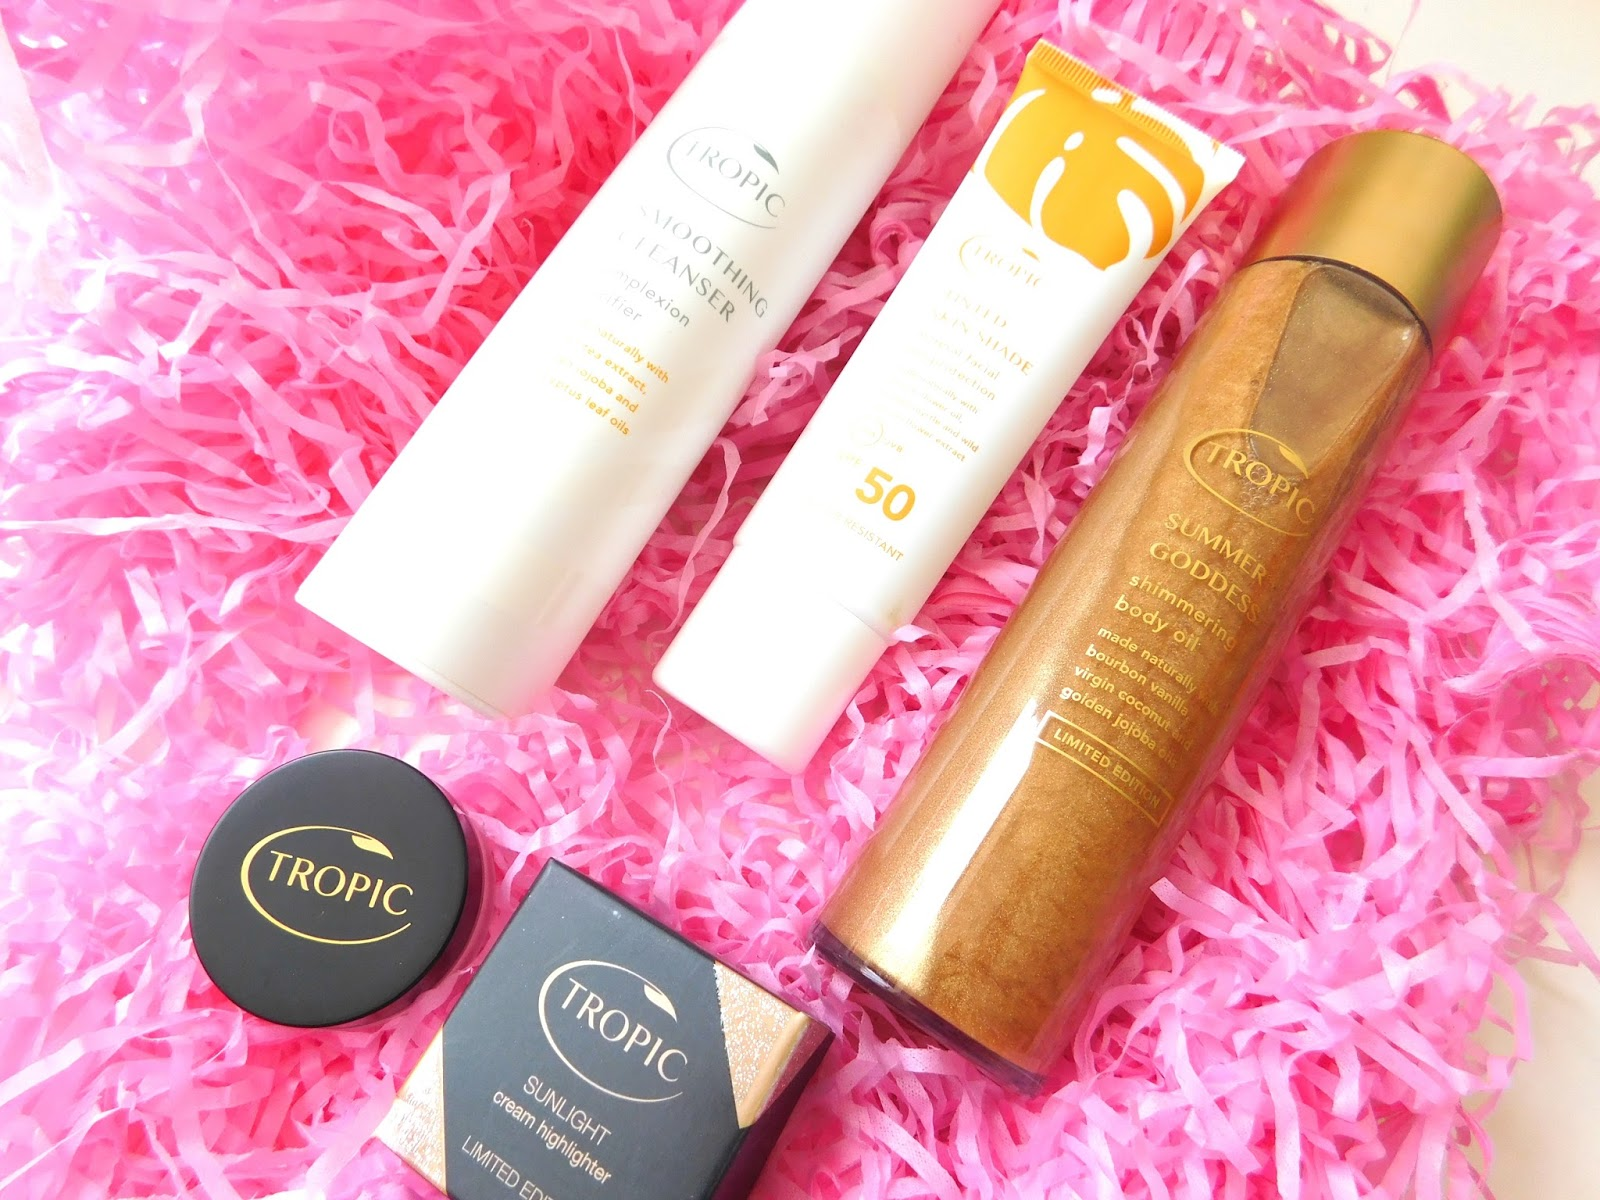 Tropic Skincare Review, Summer Products, Tinted Skin Shade, Body Oil, Cleanser, Highlighters, Giveaway